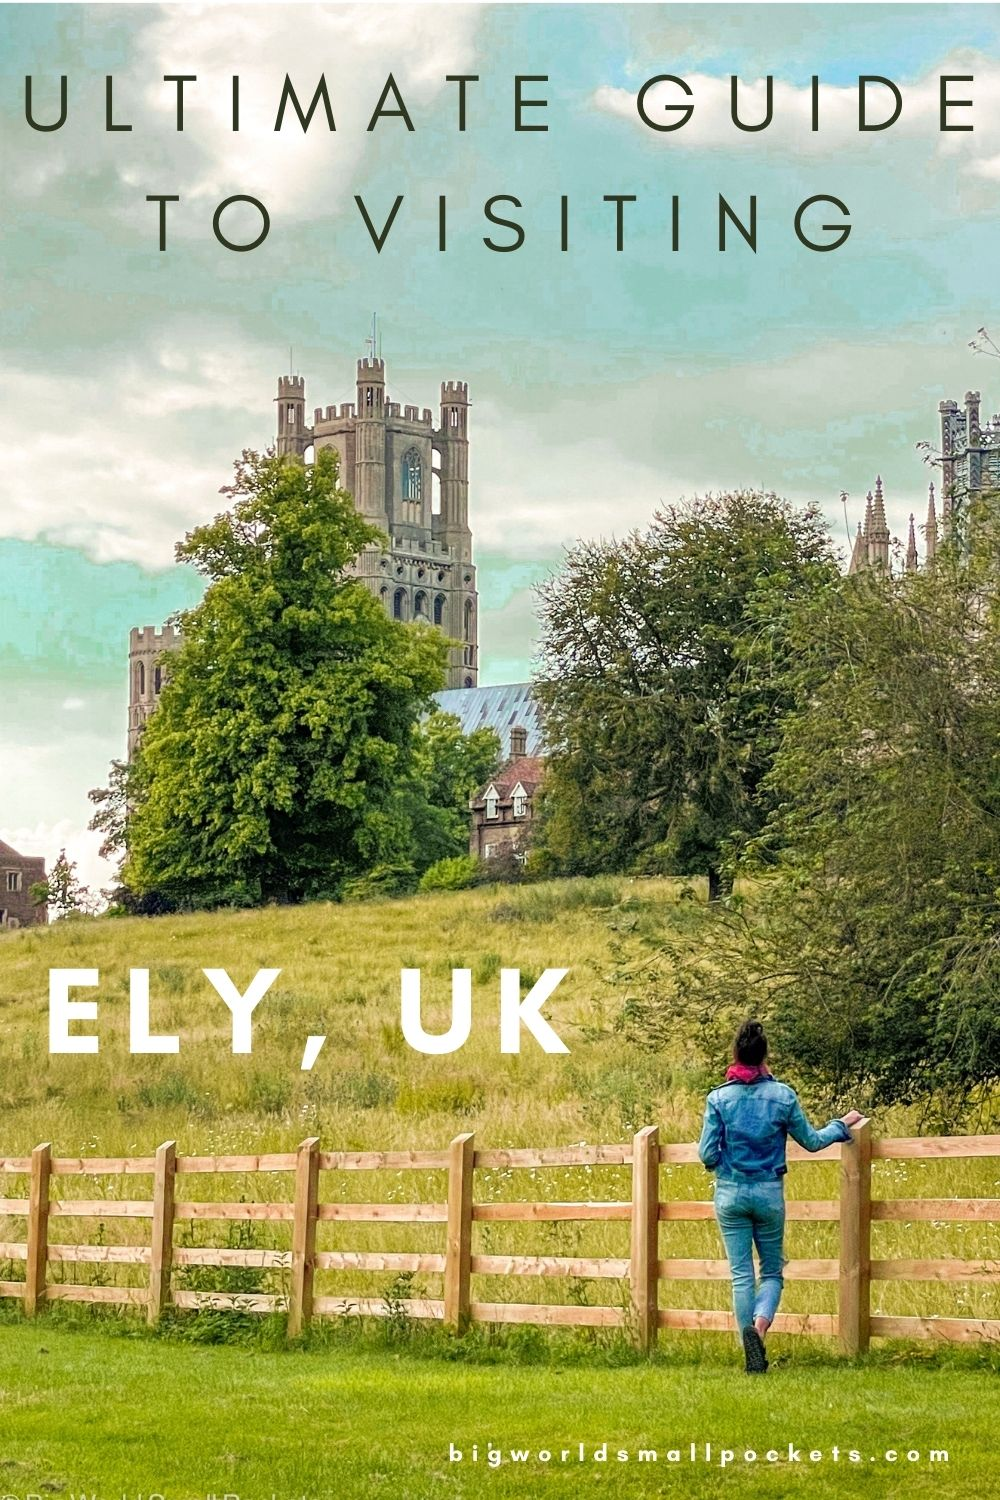 The Complete Guide to Visiting Ely, England